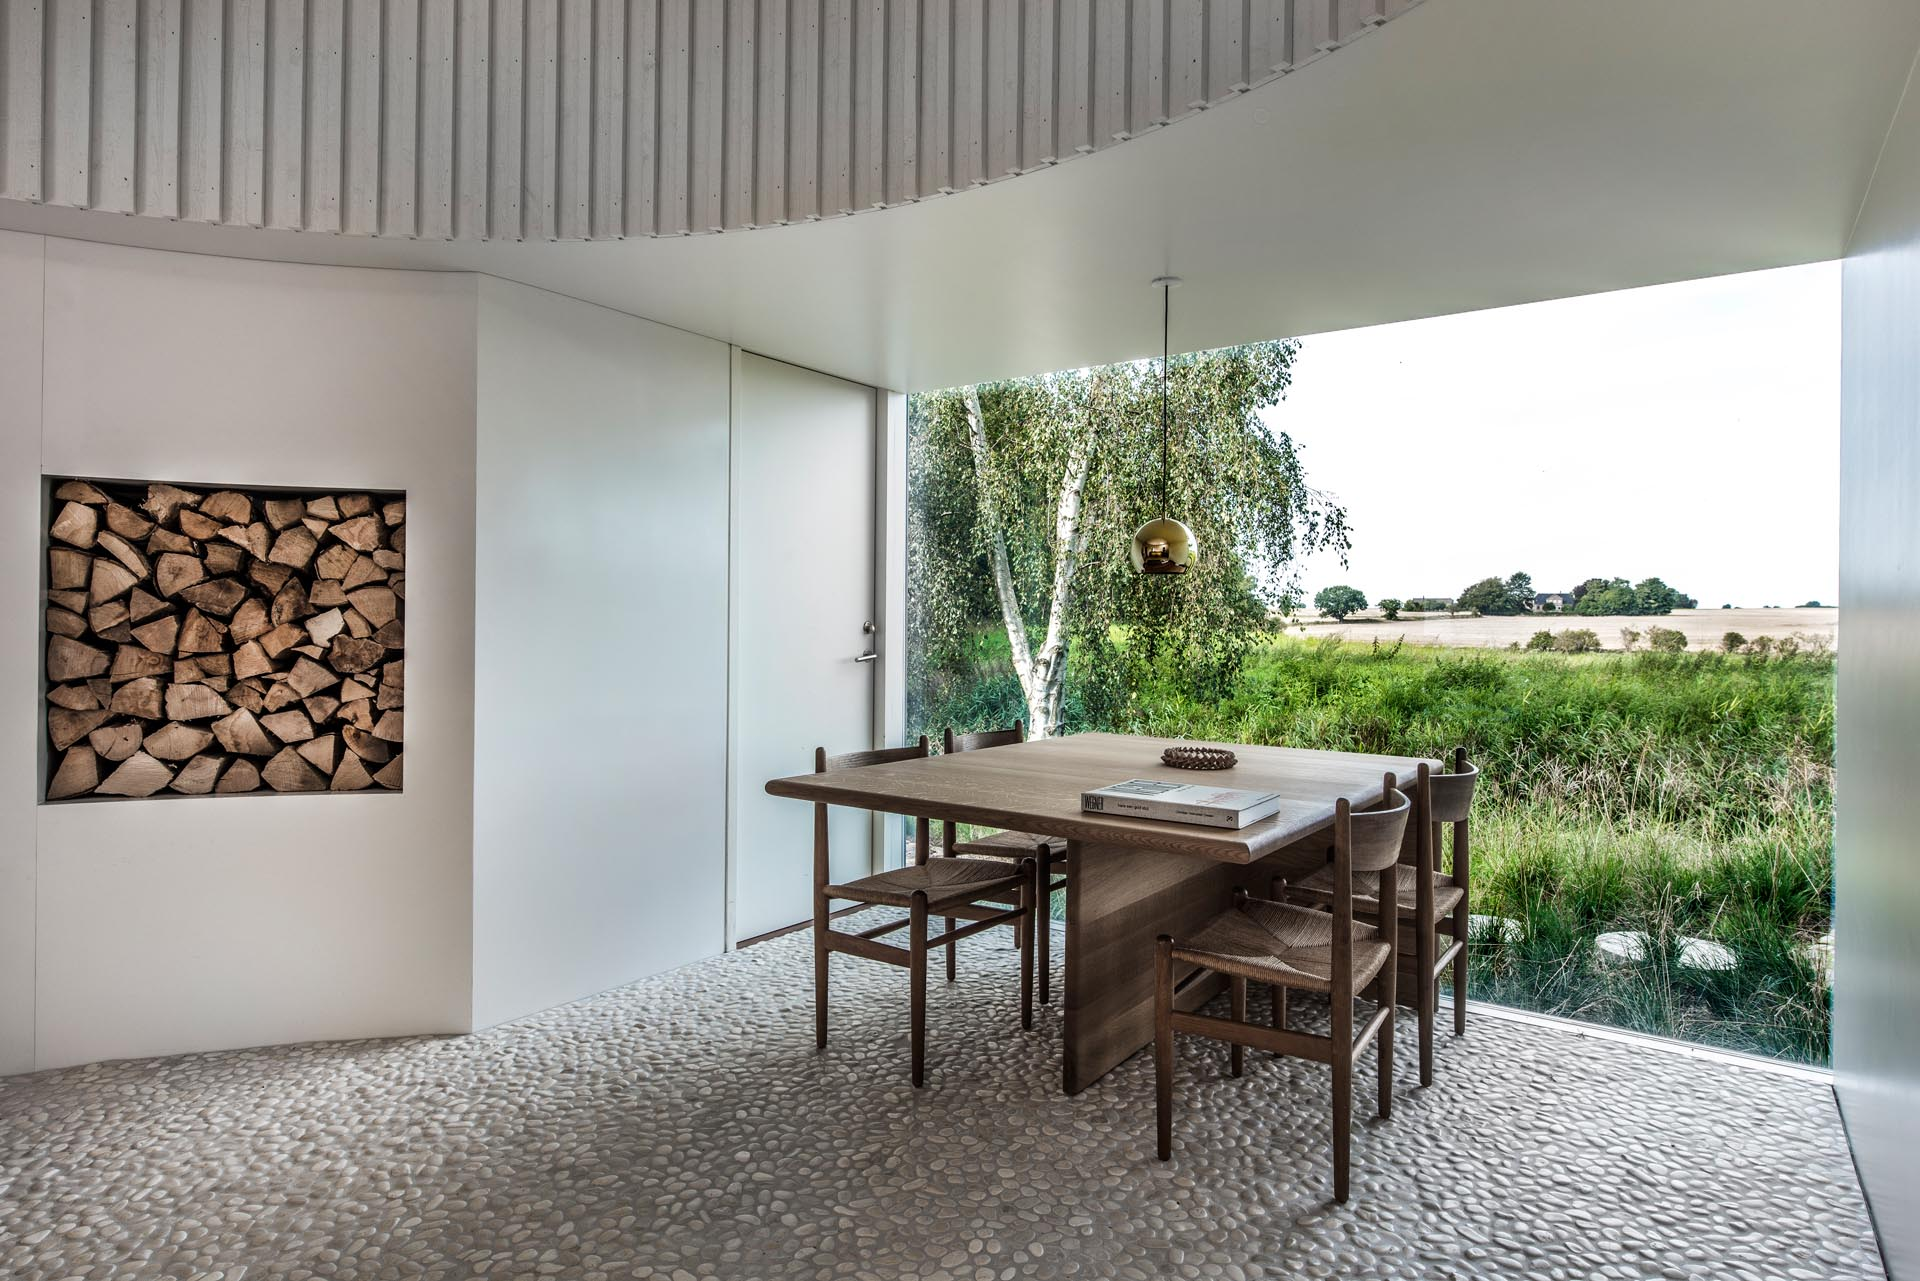 In this modern dining room, the white walls complement the painted board and batten wall cladding, which are included to provide a calm backdrop for the constantly changing textures and colors of the agricultural landscape seen through the window.